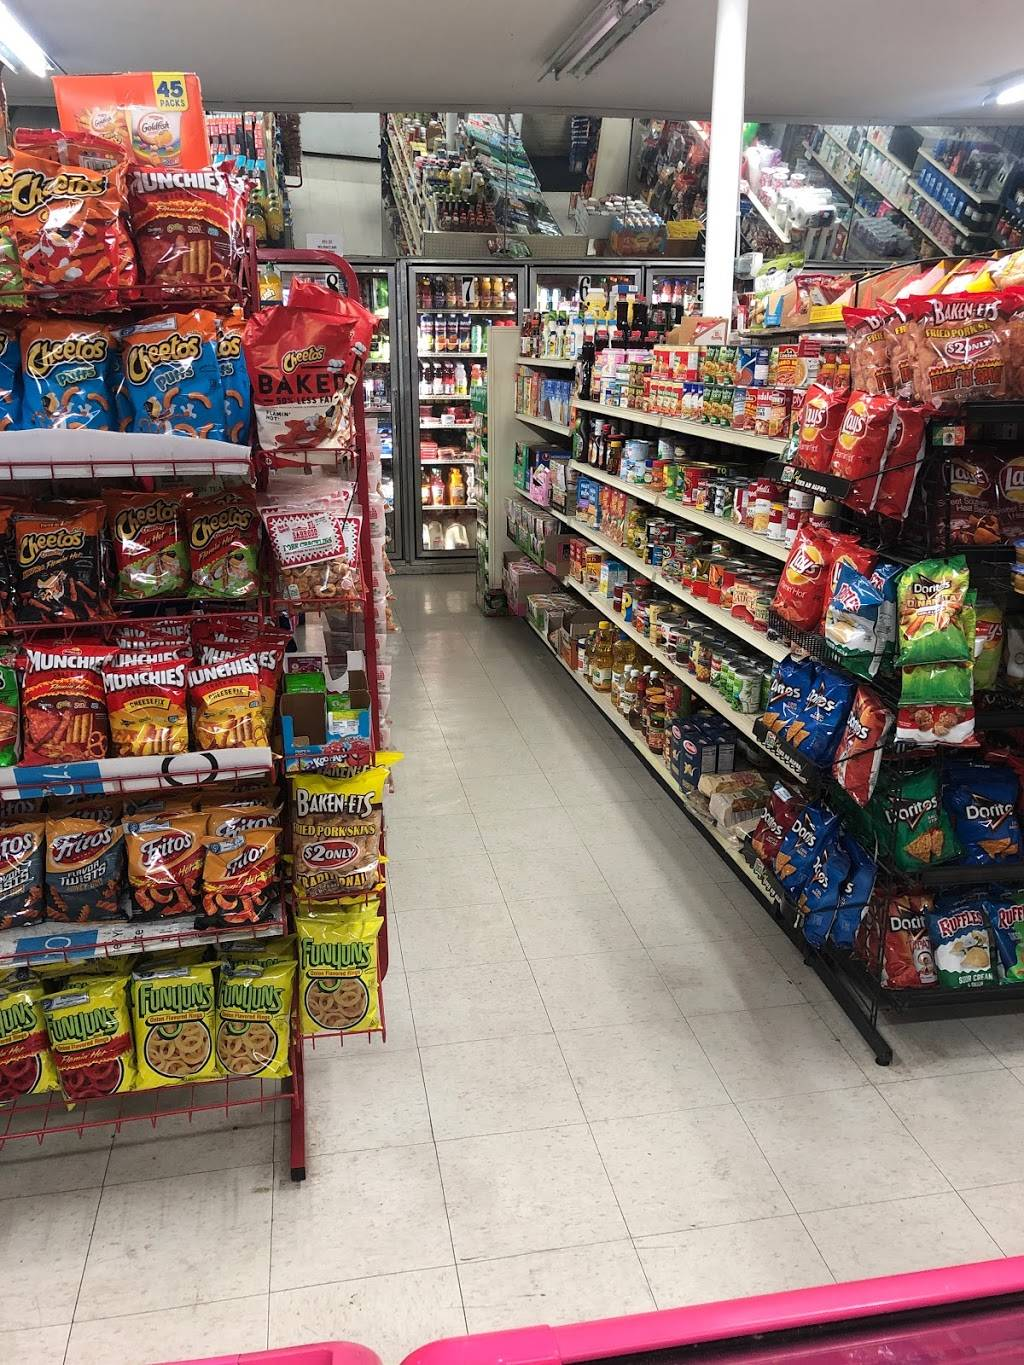 Haggin Oaks Market - convenience store  | Photo 3 of 4 | Address: 3560 Del Paso Blvd, Sacramento, CA 95838, USA | Phone: (916) 514-1870